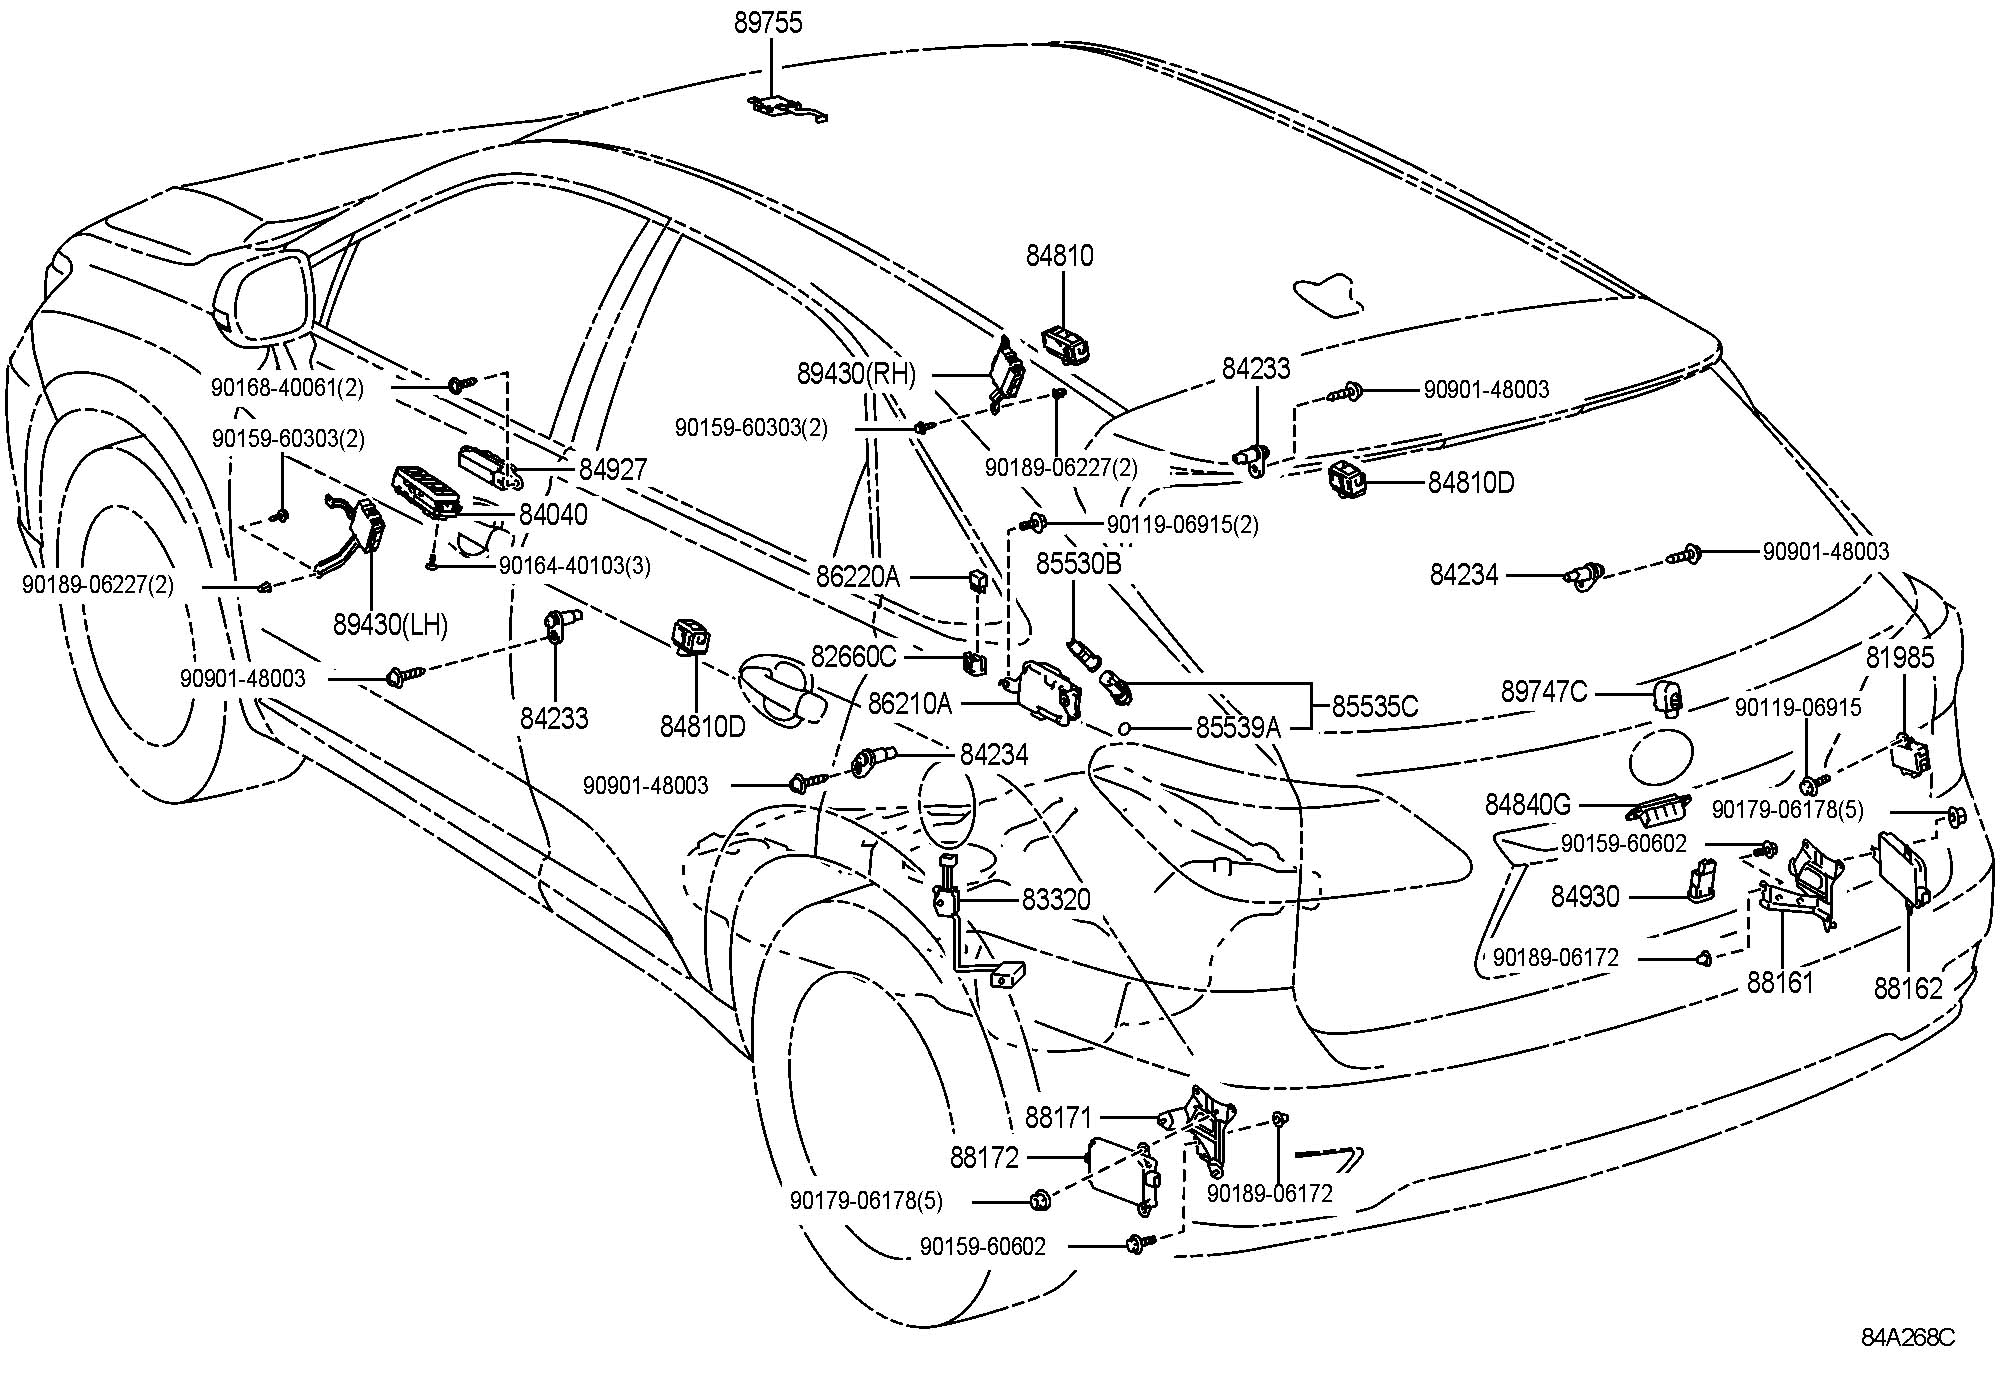 Lexus Gx Wiring Diagram Detailed Schematic Diagrams Jeep 2 5 Engine Rx 350 Parts Basic U2022 Liberty